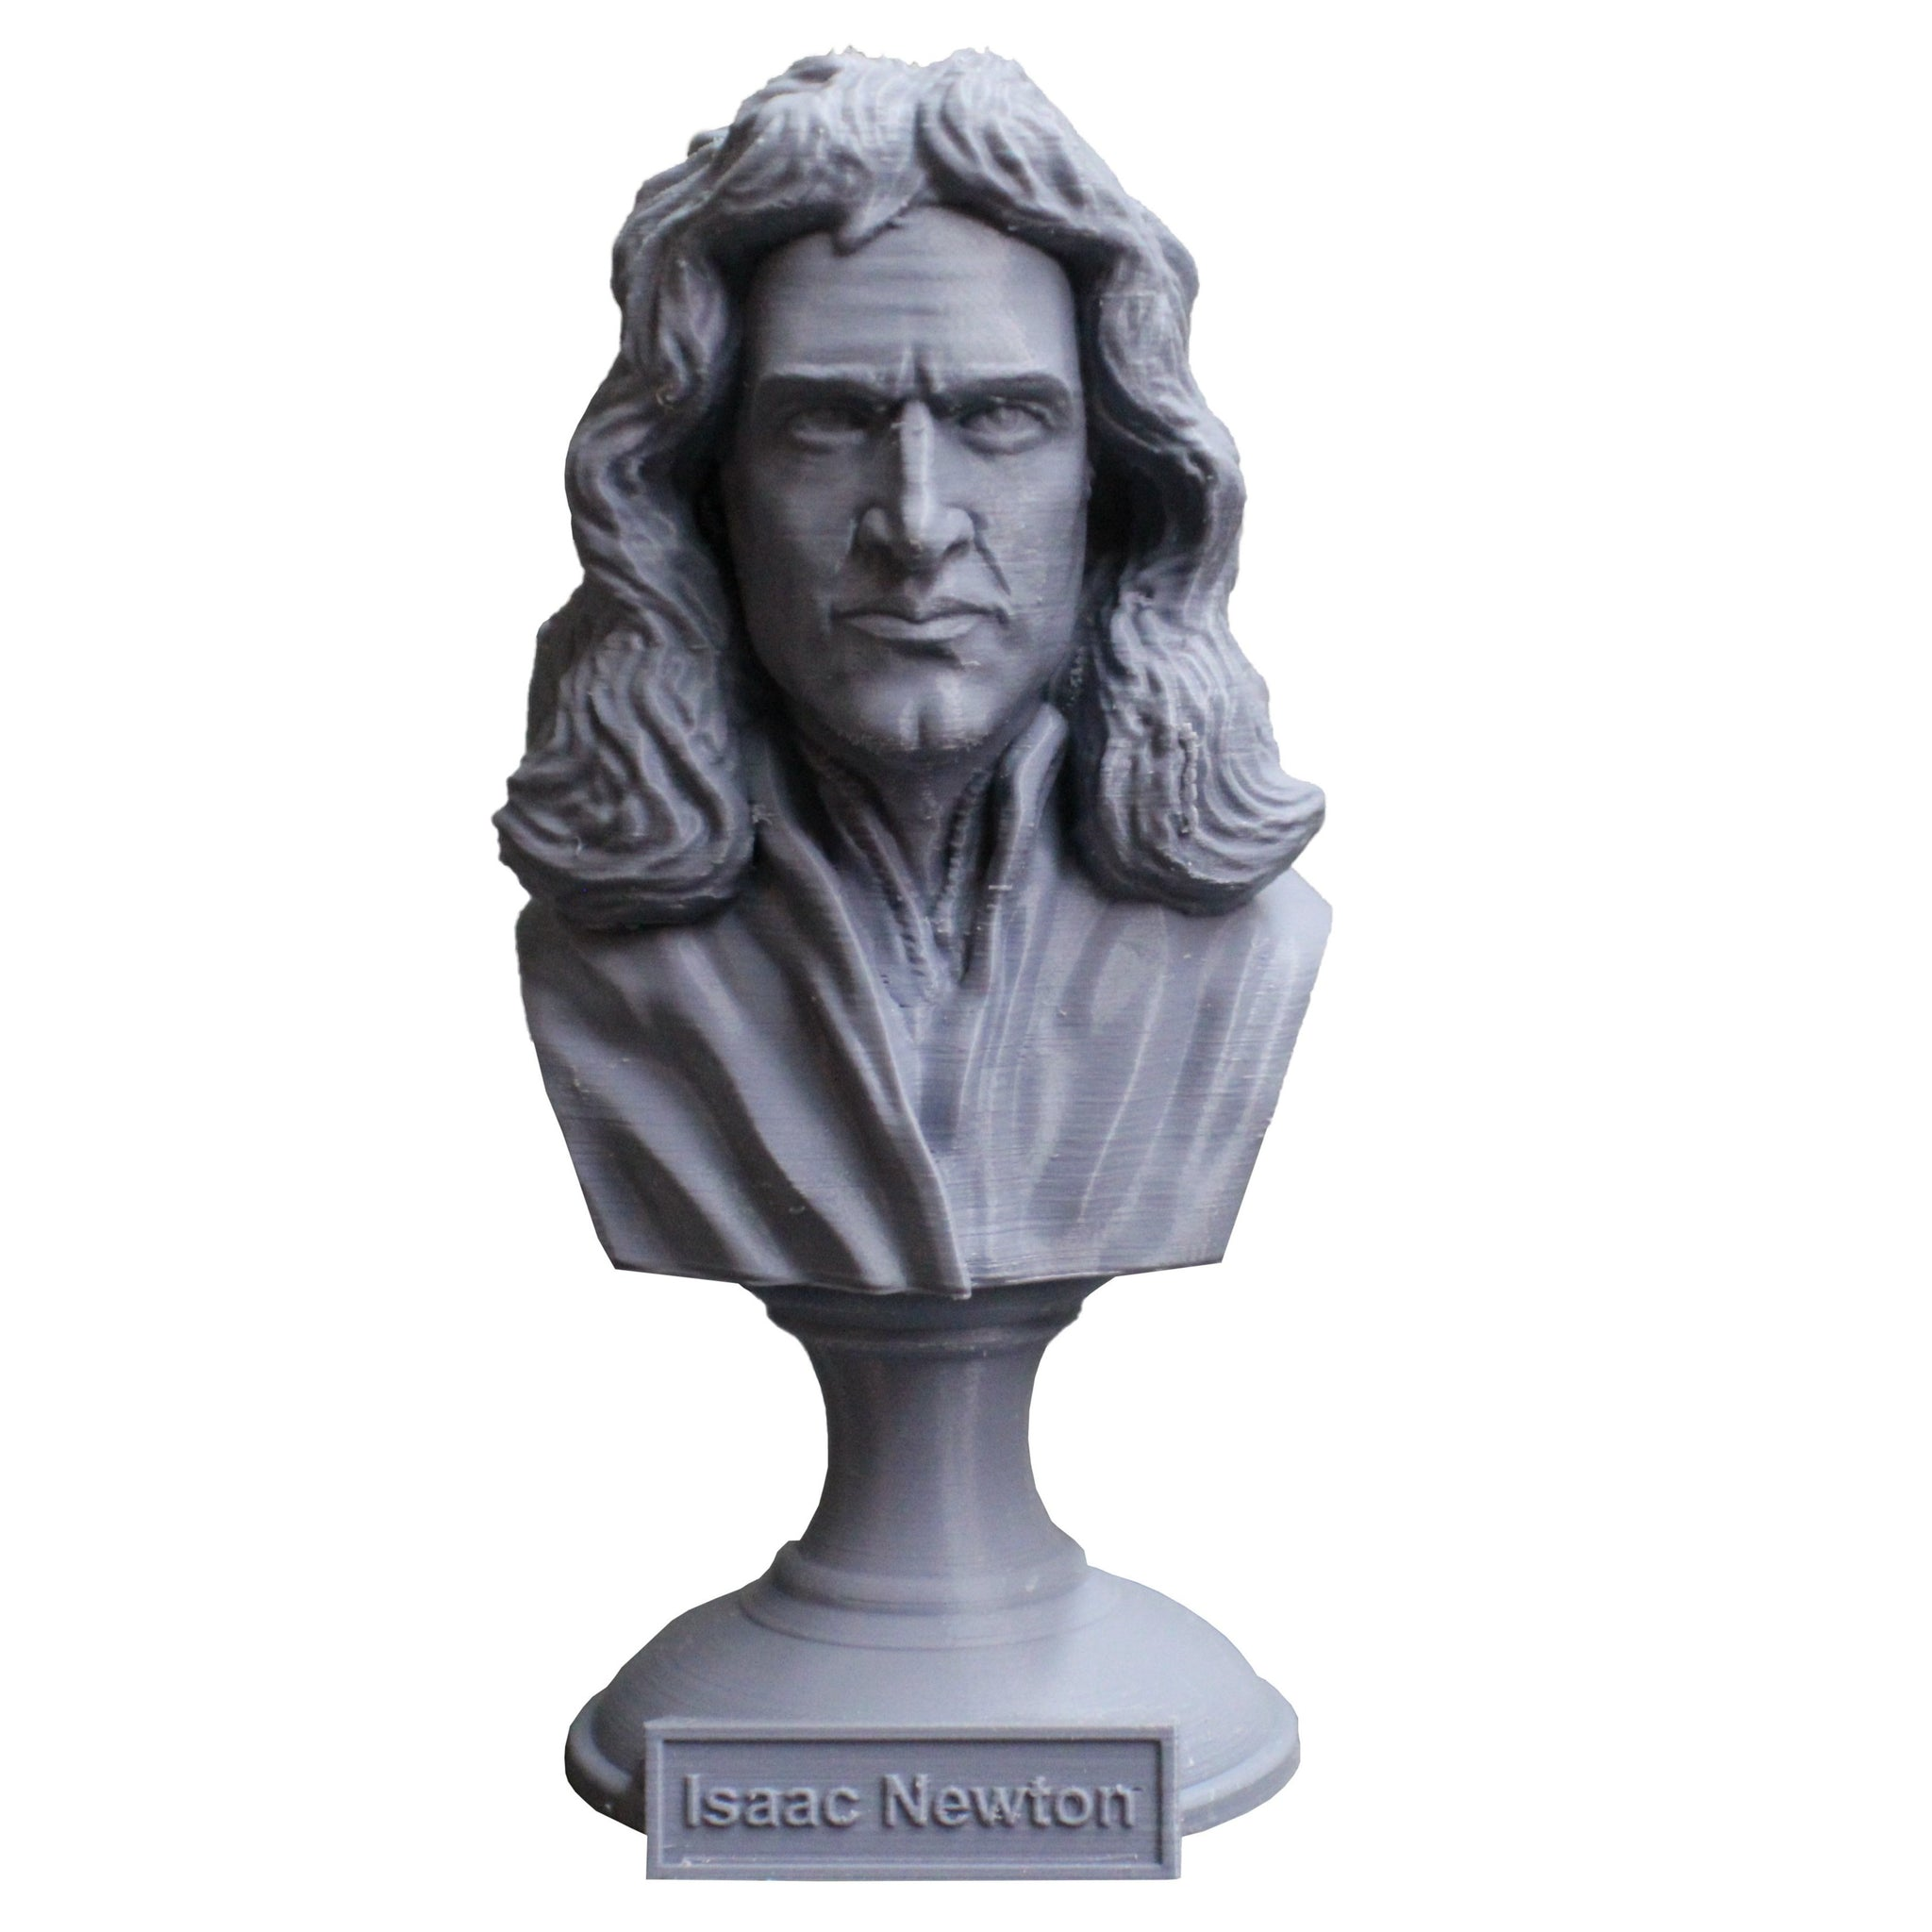 Isaac Newton Famous English Mathematician, Physicist and Astronomer Sculpture Bust on Pedestal